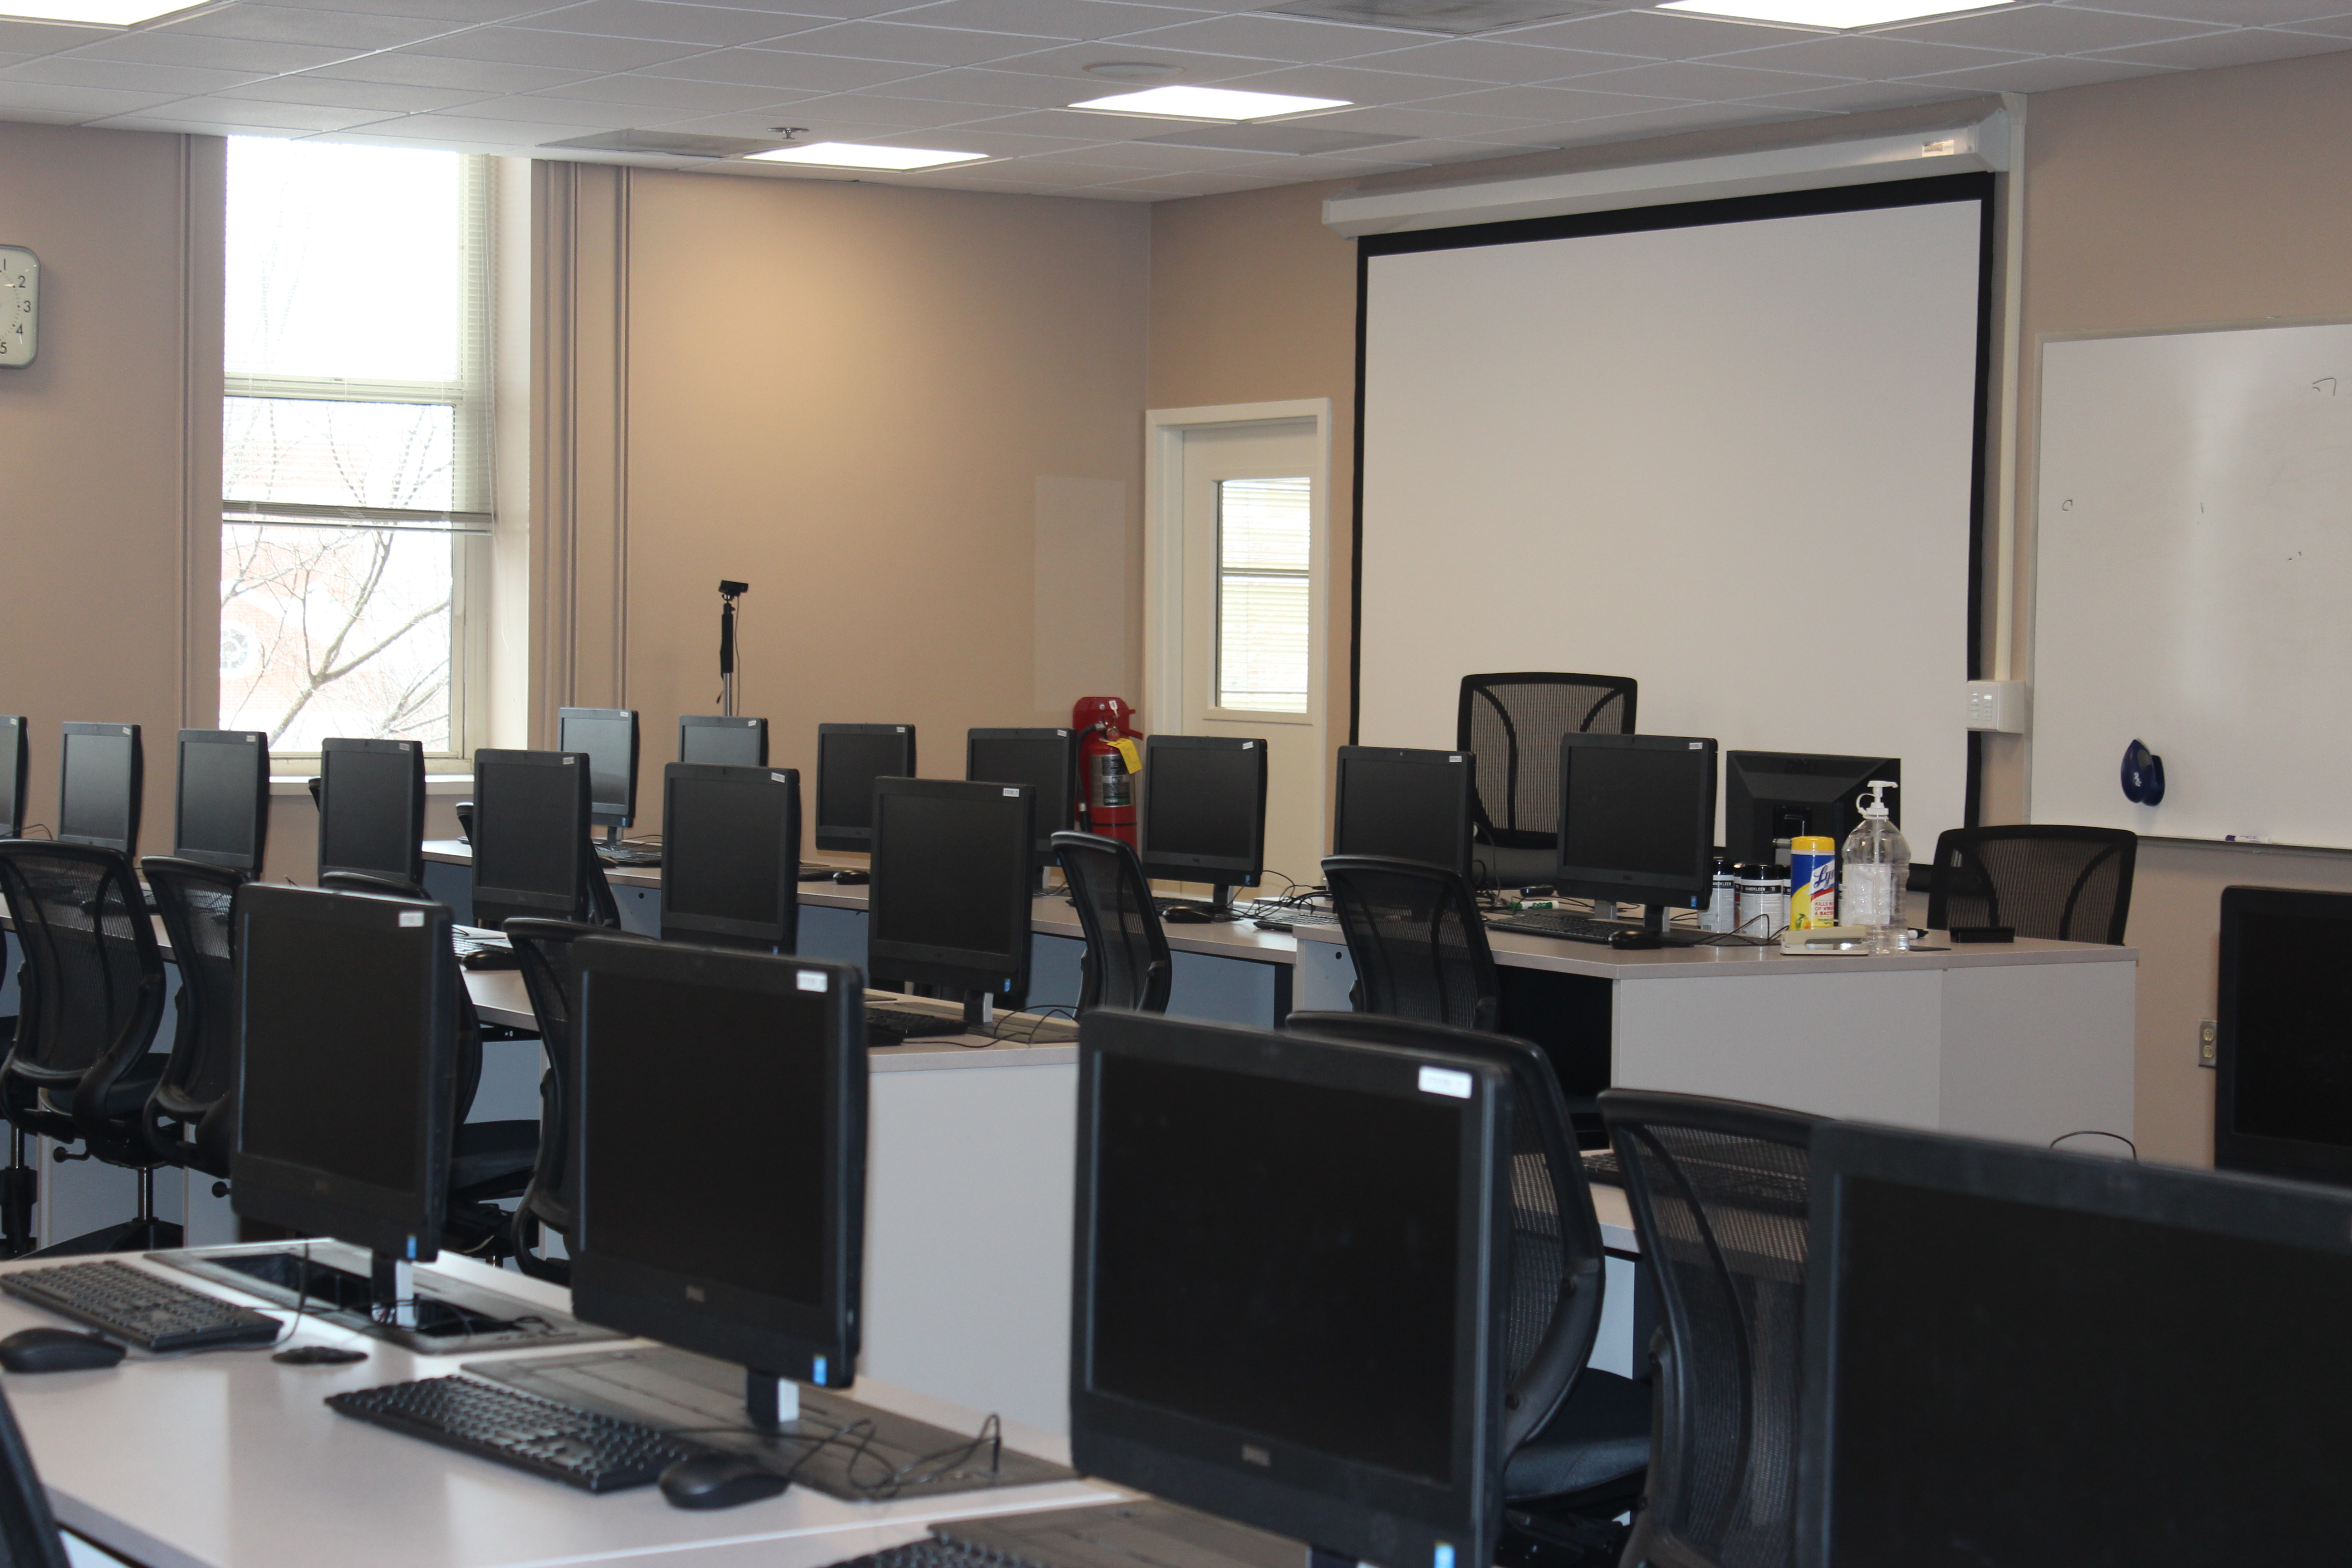 Atkinson 308 classroom showing computers and front of the room display